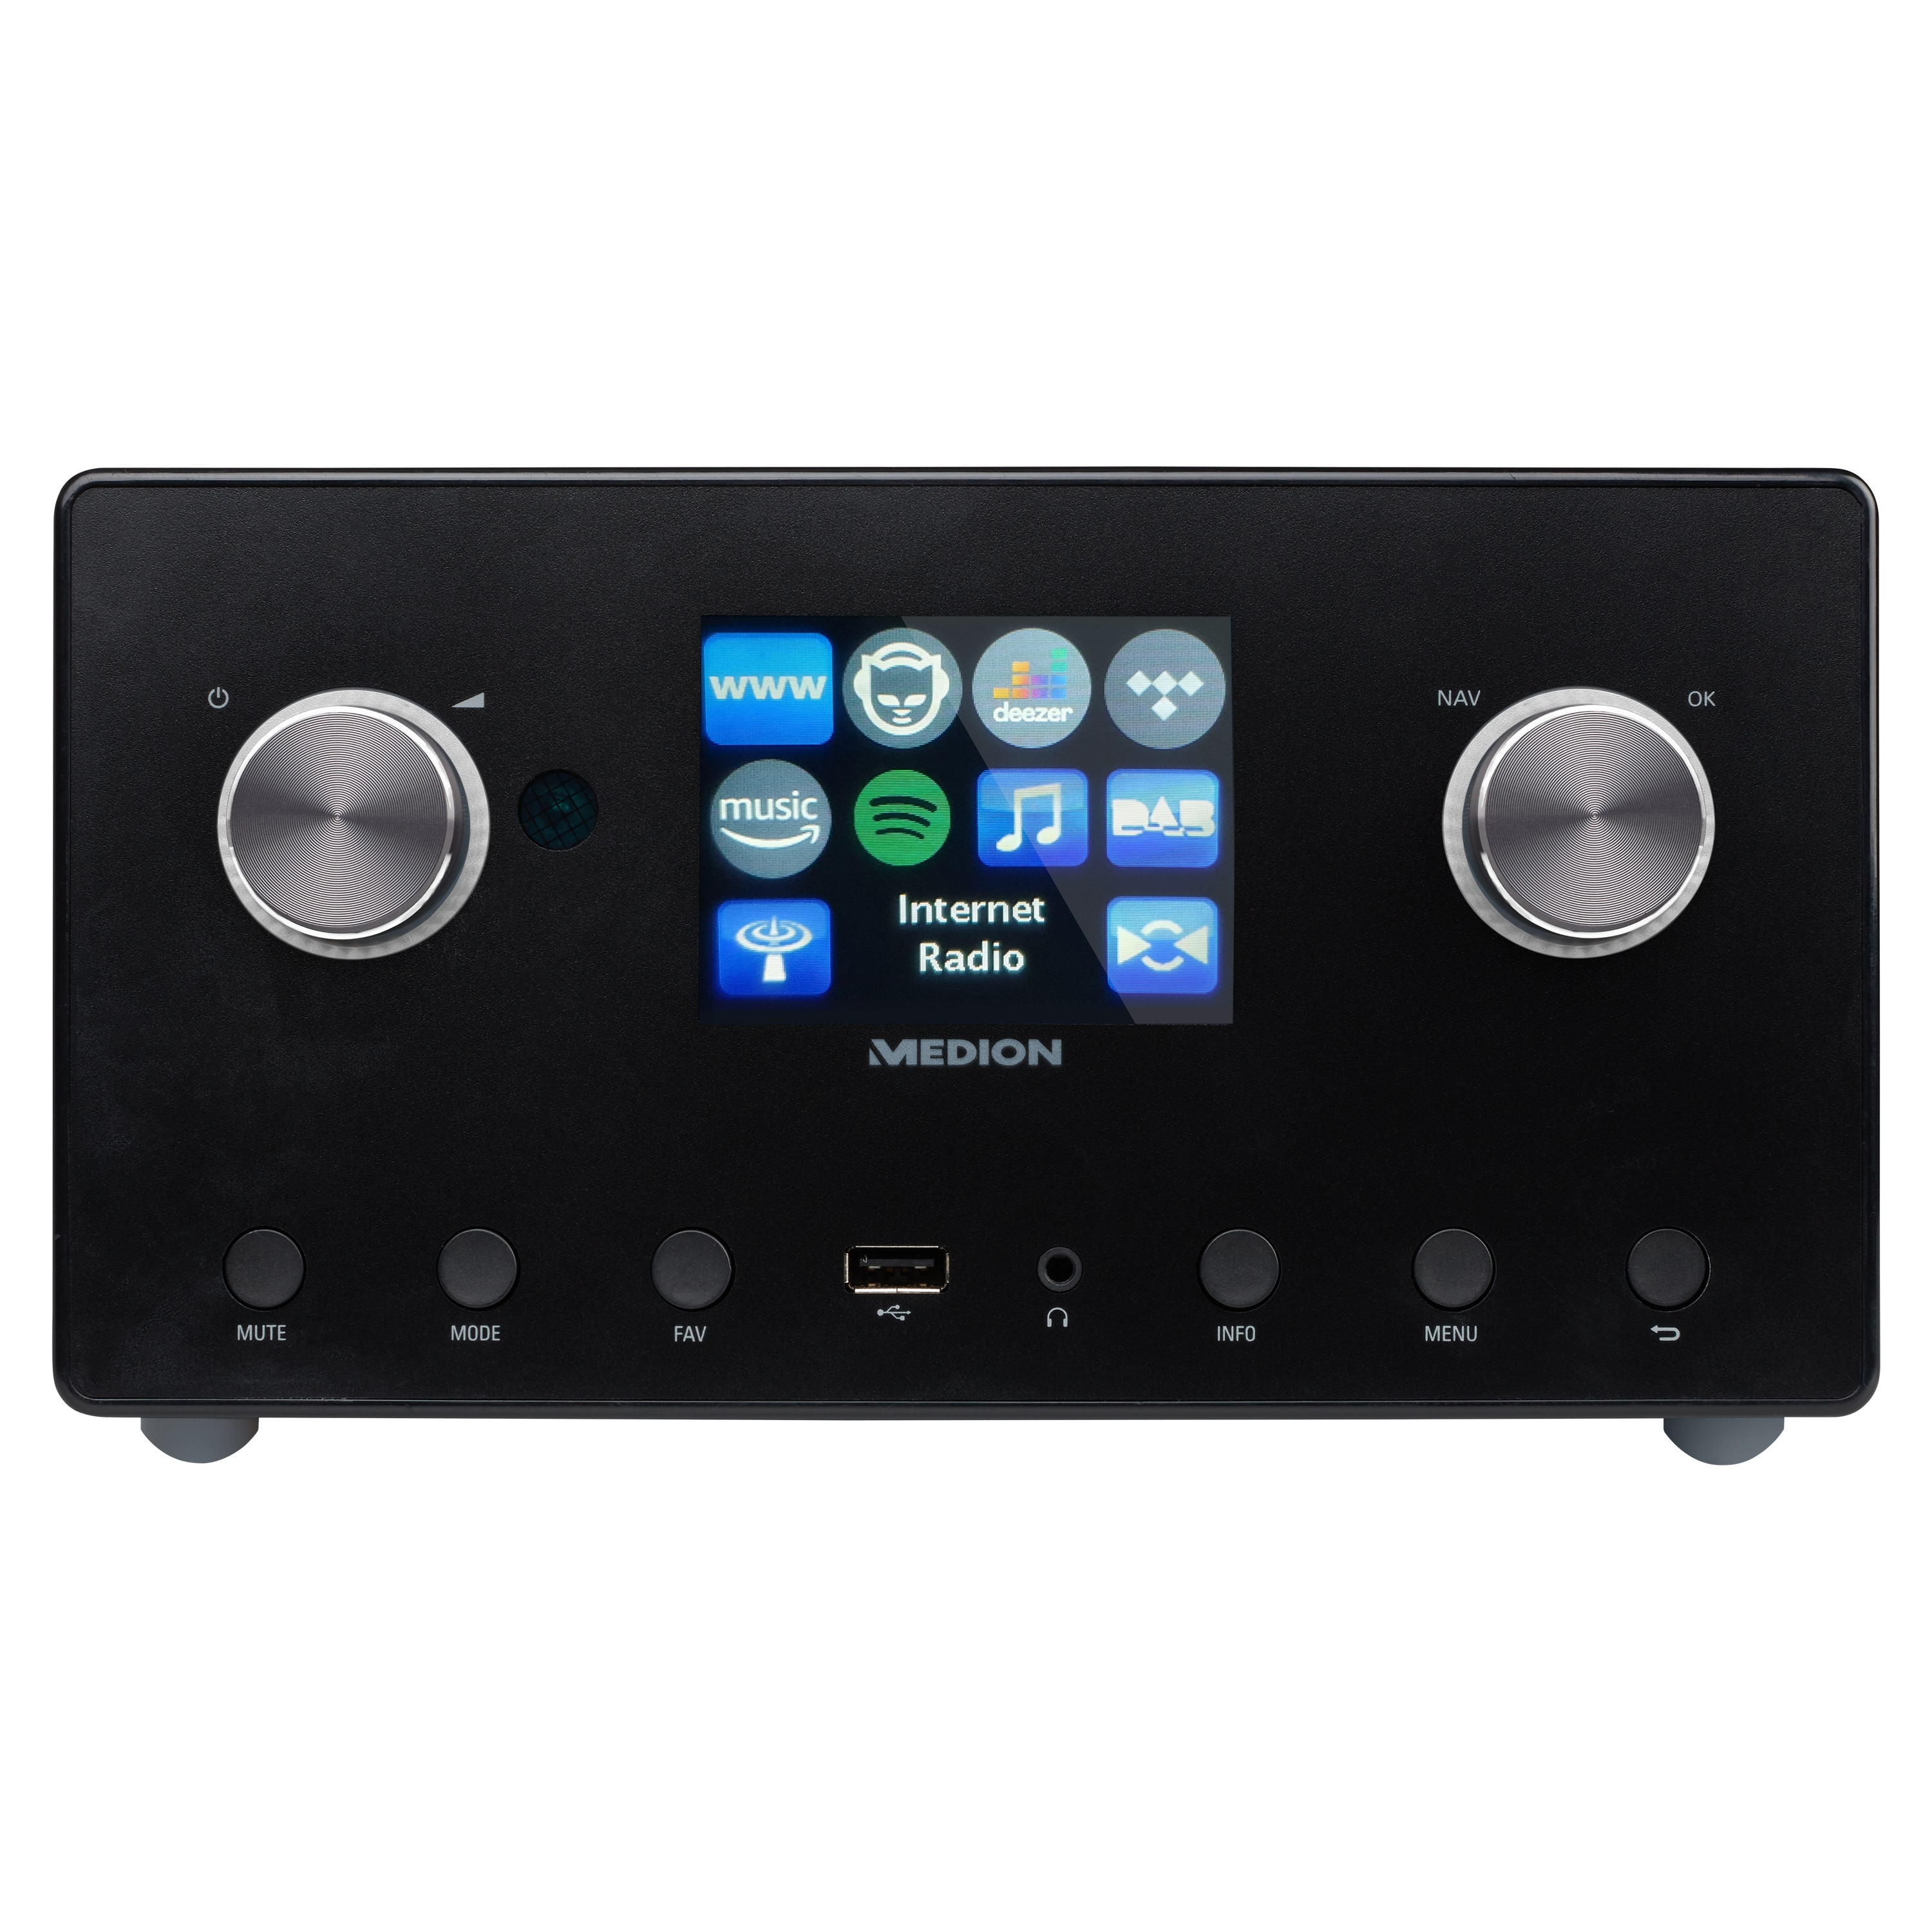 MEDION® LIFE® P85295 Stereo internetradio | 3,2 inch TFT-display | DAB+ & FM | Spotify-Connect | DLNA | USB | WiFi | LAN | Subwoofer | 2 x 7,5 W + 1 x 15 W (RMS)